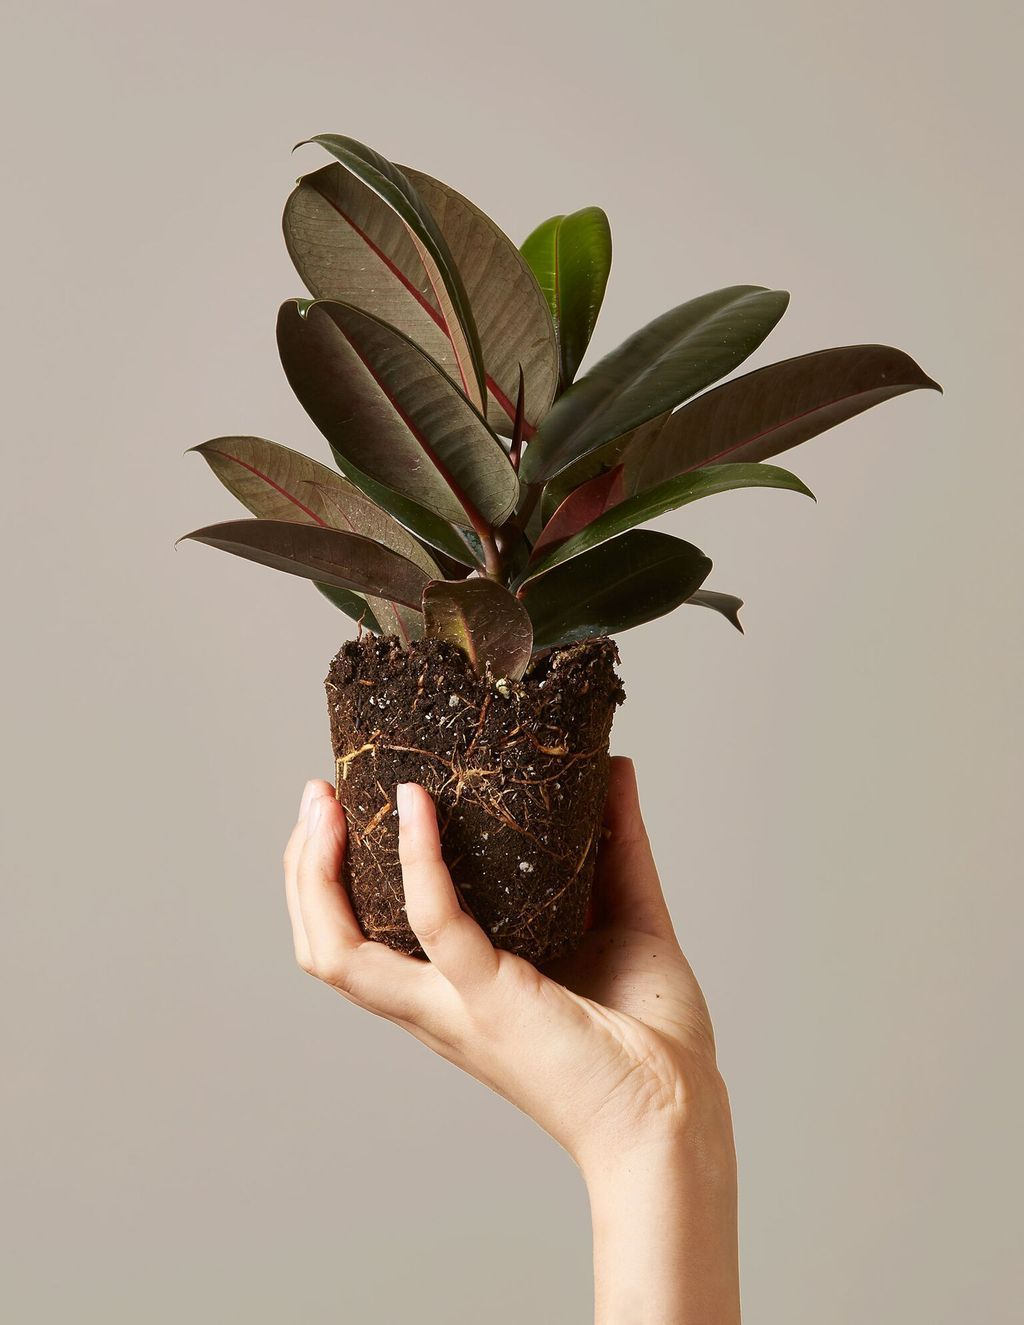 Eight Tips for Safely Transporting Your Houseplants During a Move